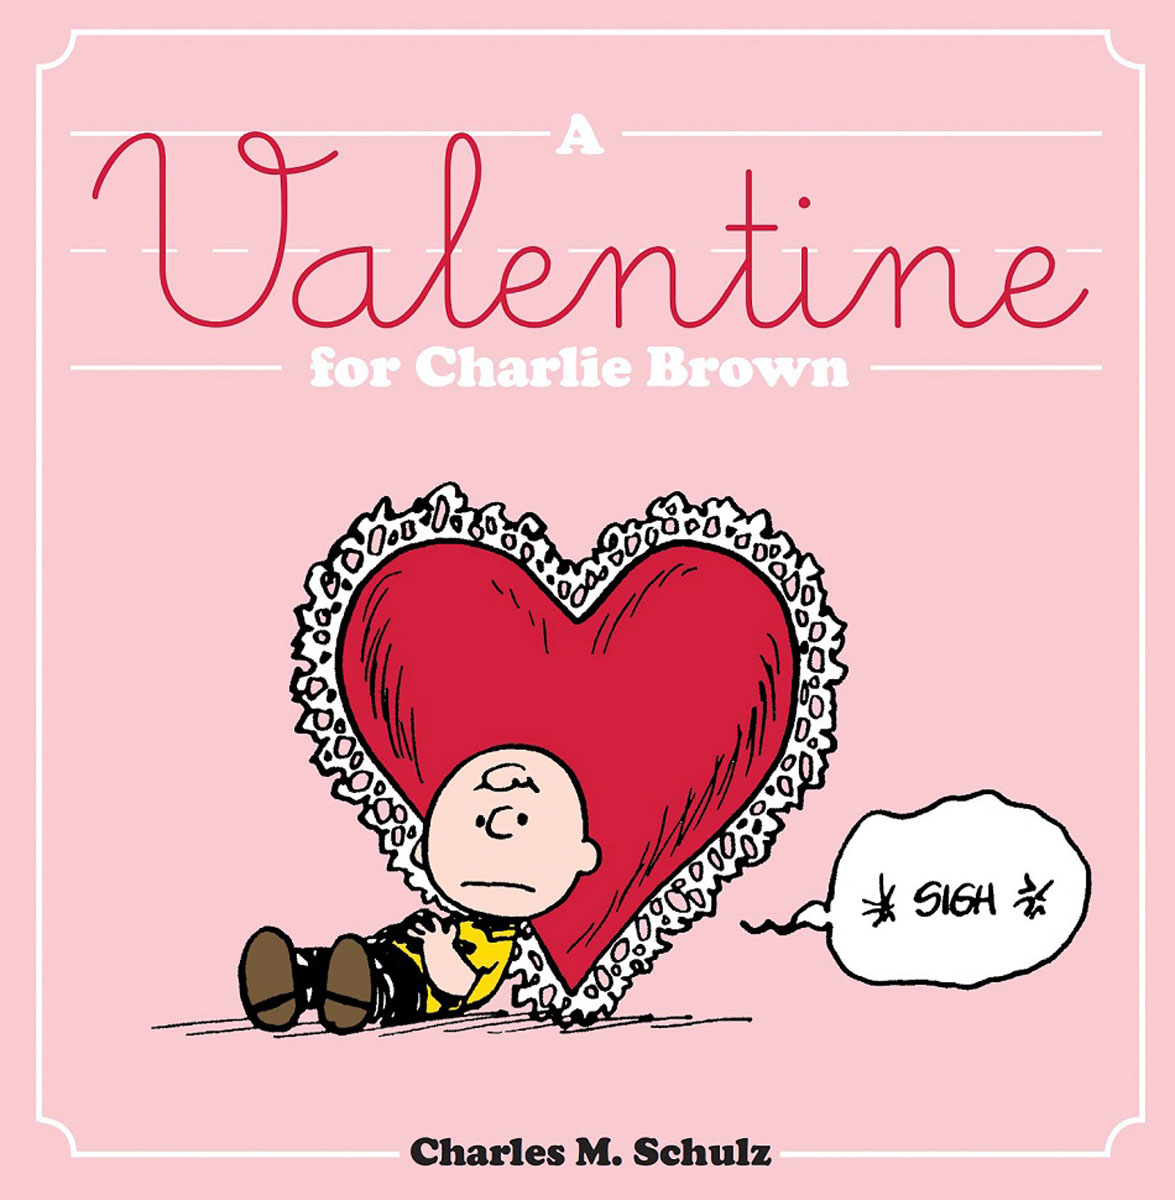 A Valentine For Charlie Brown stephen brown free gift inside forget the customer develop marketease